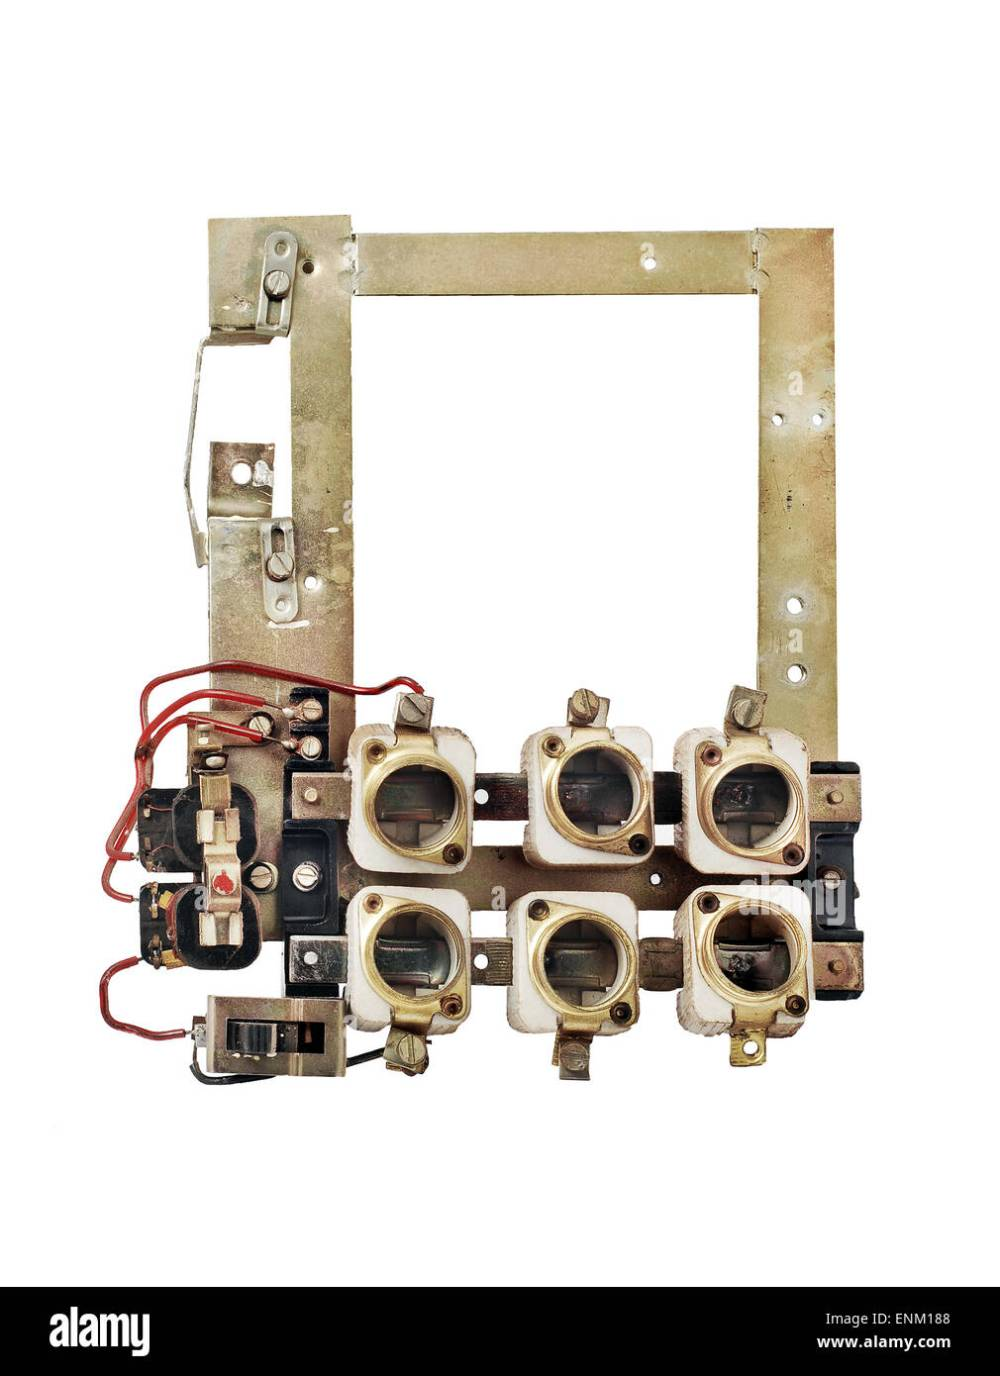 medium resolution of old fuse box isolated stock image